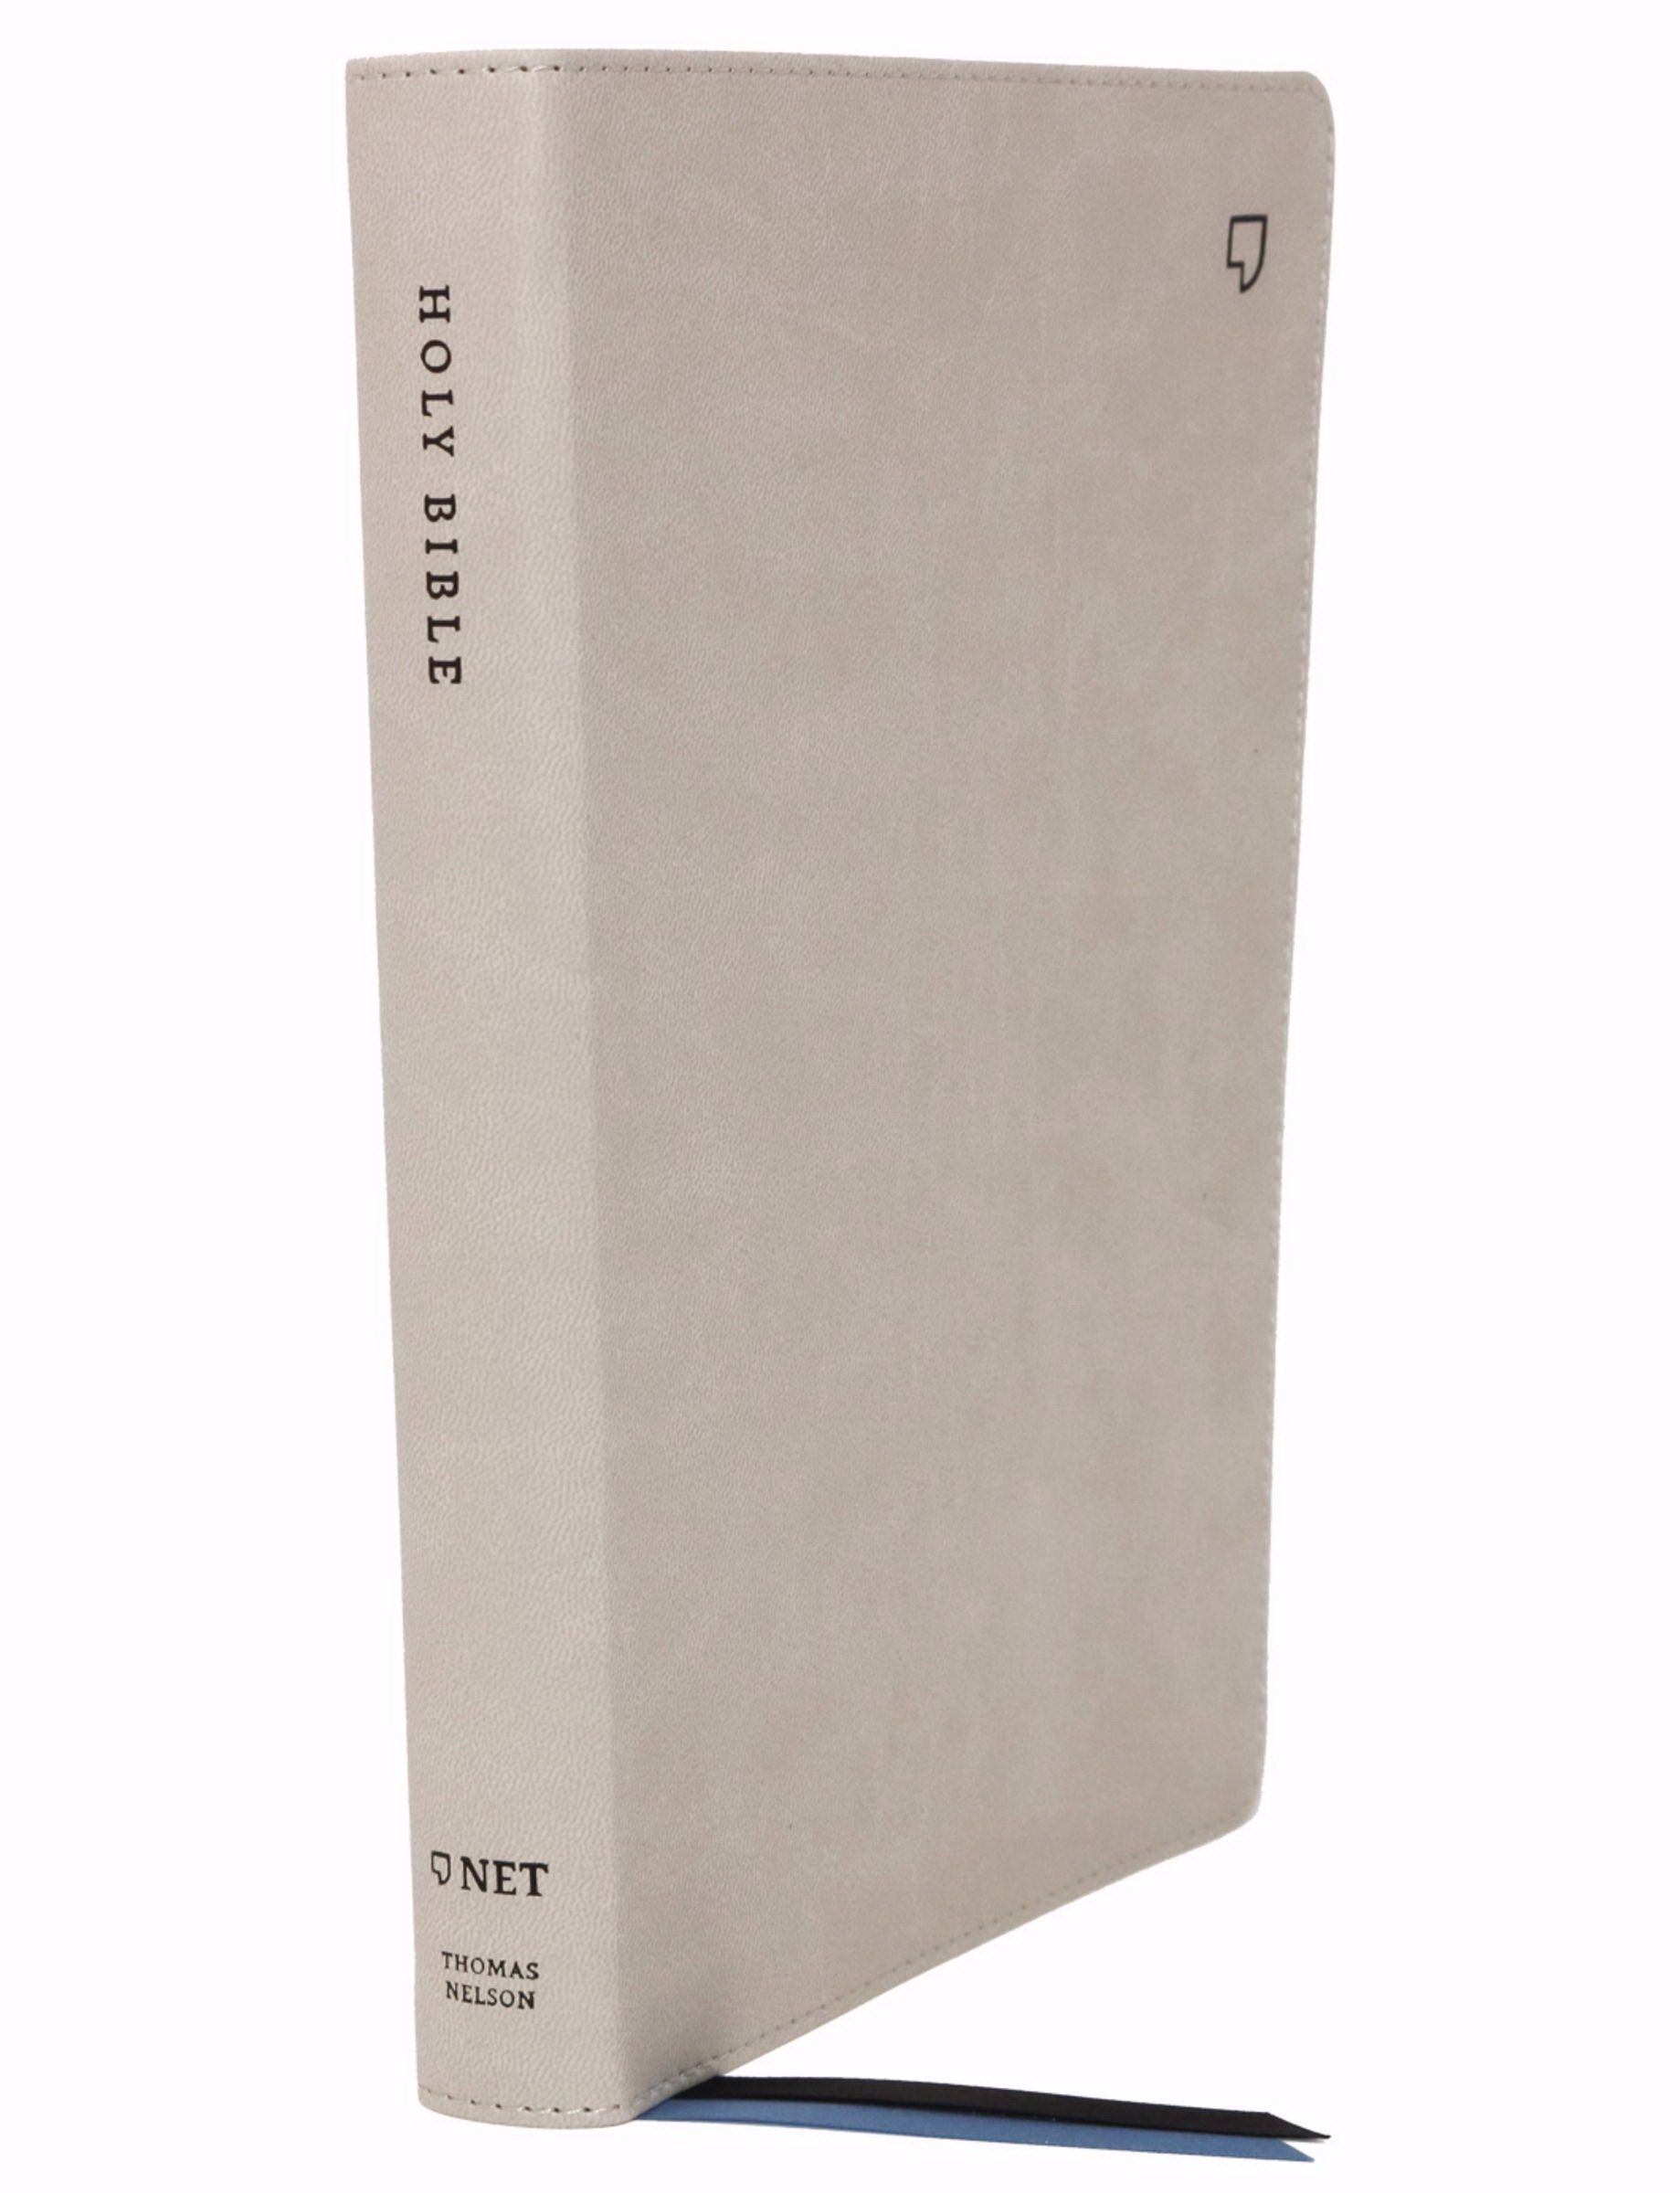 NET Thinline Bible (Comfort Print)-Stone Leathersoft Indexed